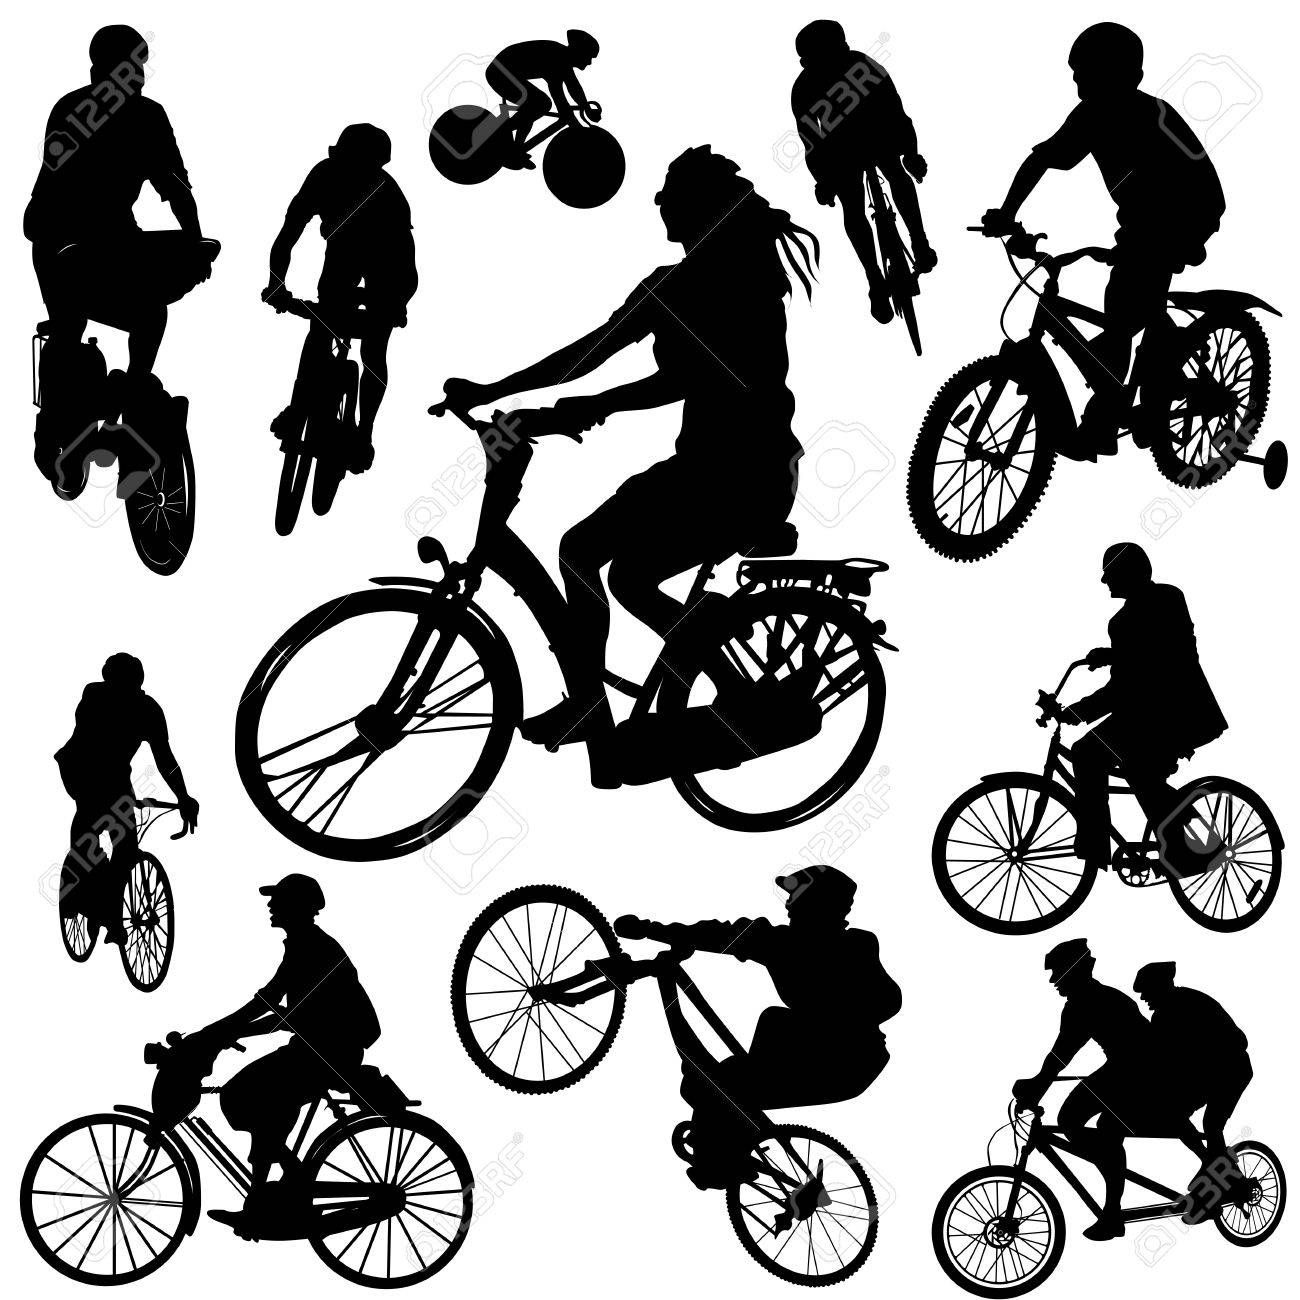 bicycle vector Stock Vector - 9592763